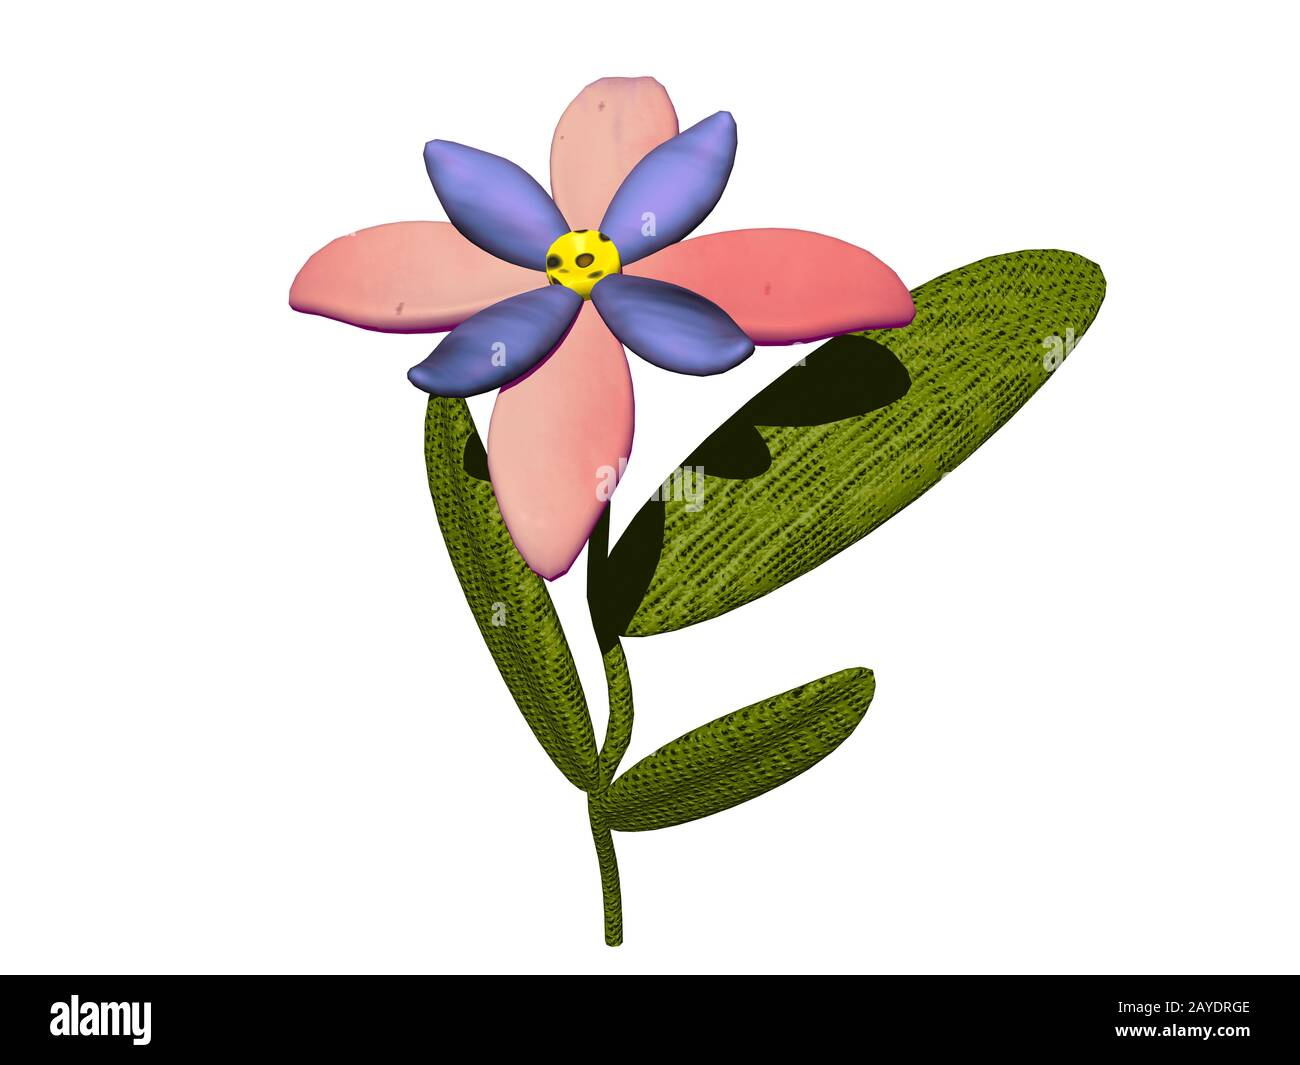 Cartoon Of Garden Flowers High Resolution Stock Photography And Images Alamy